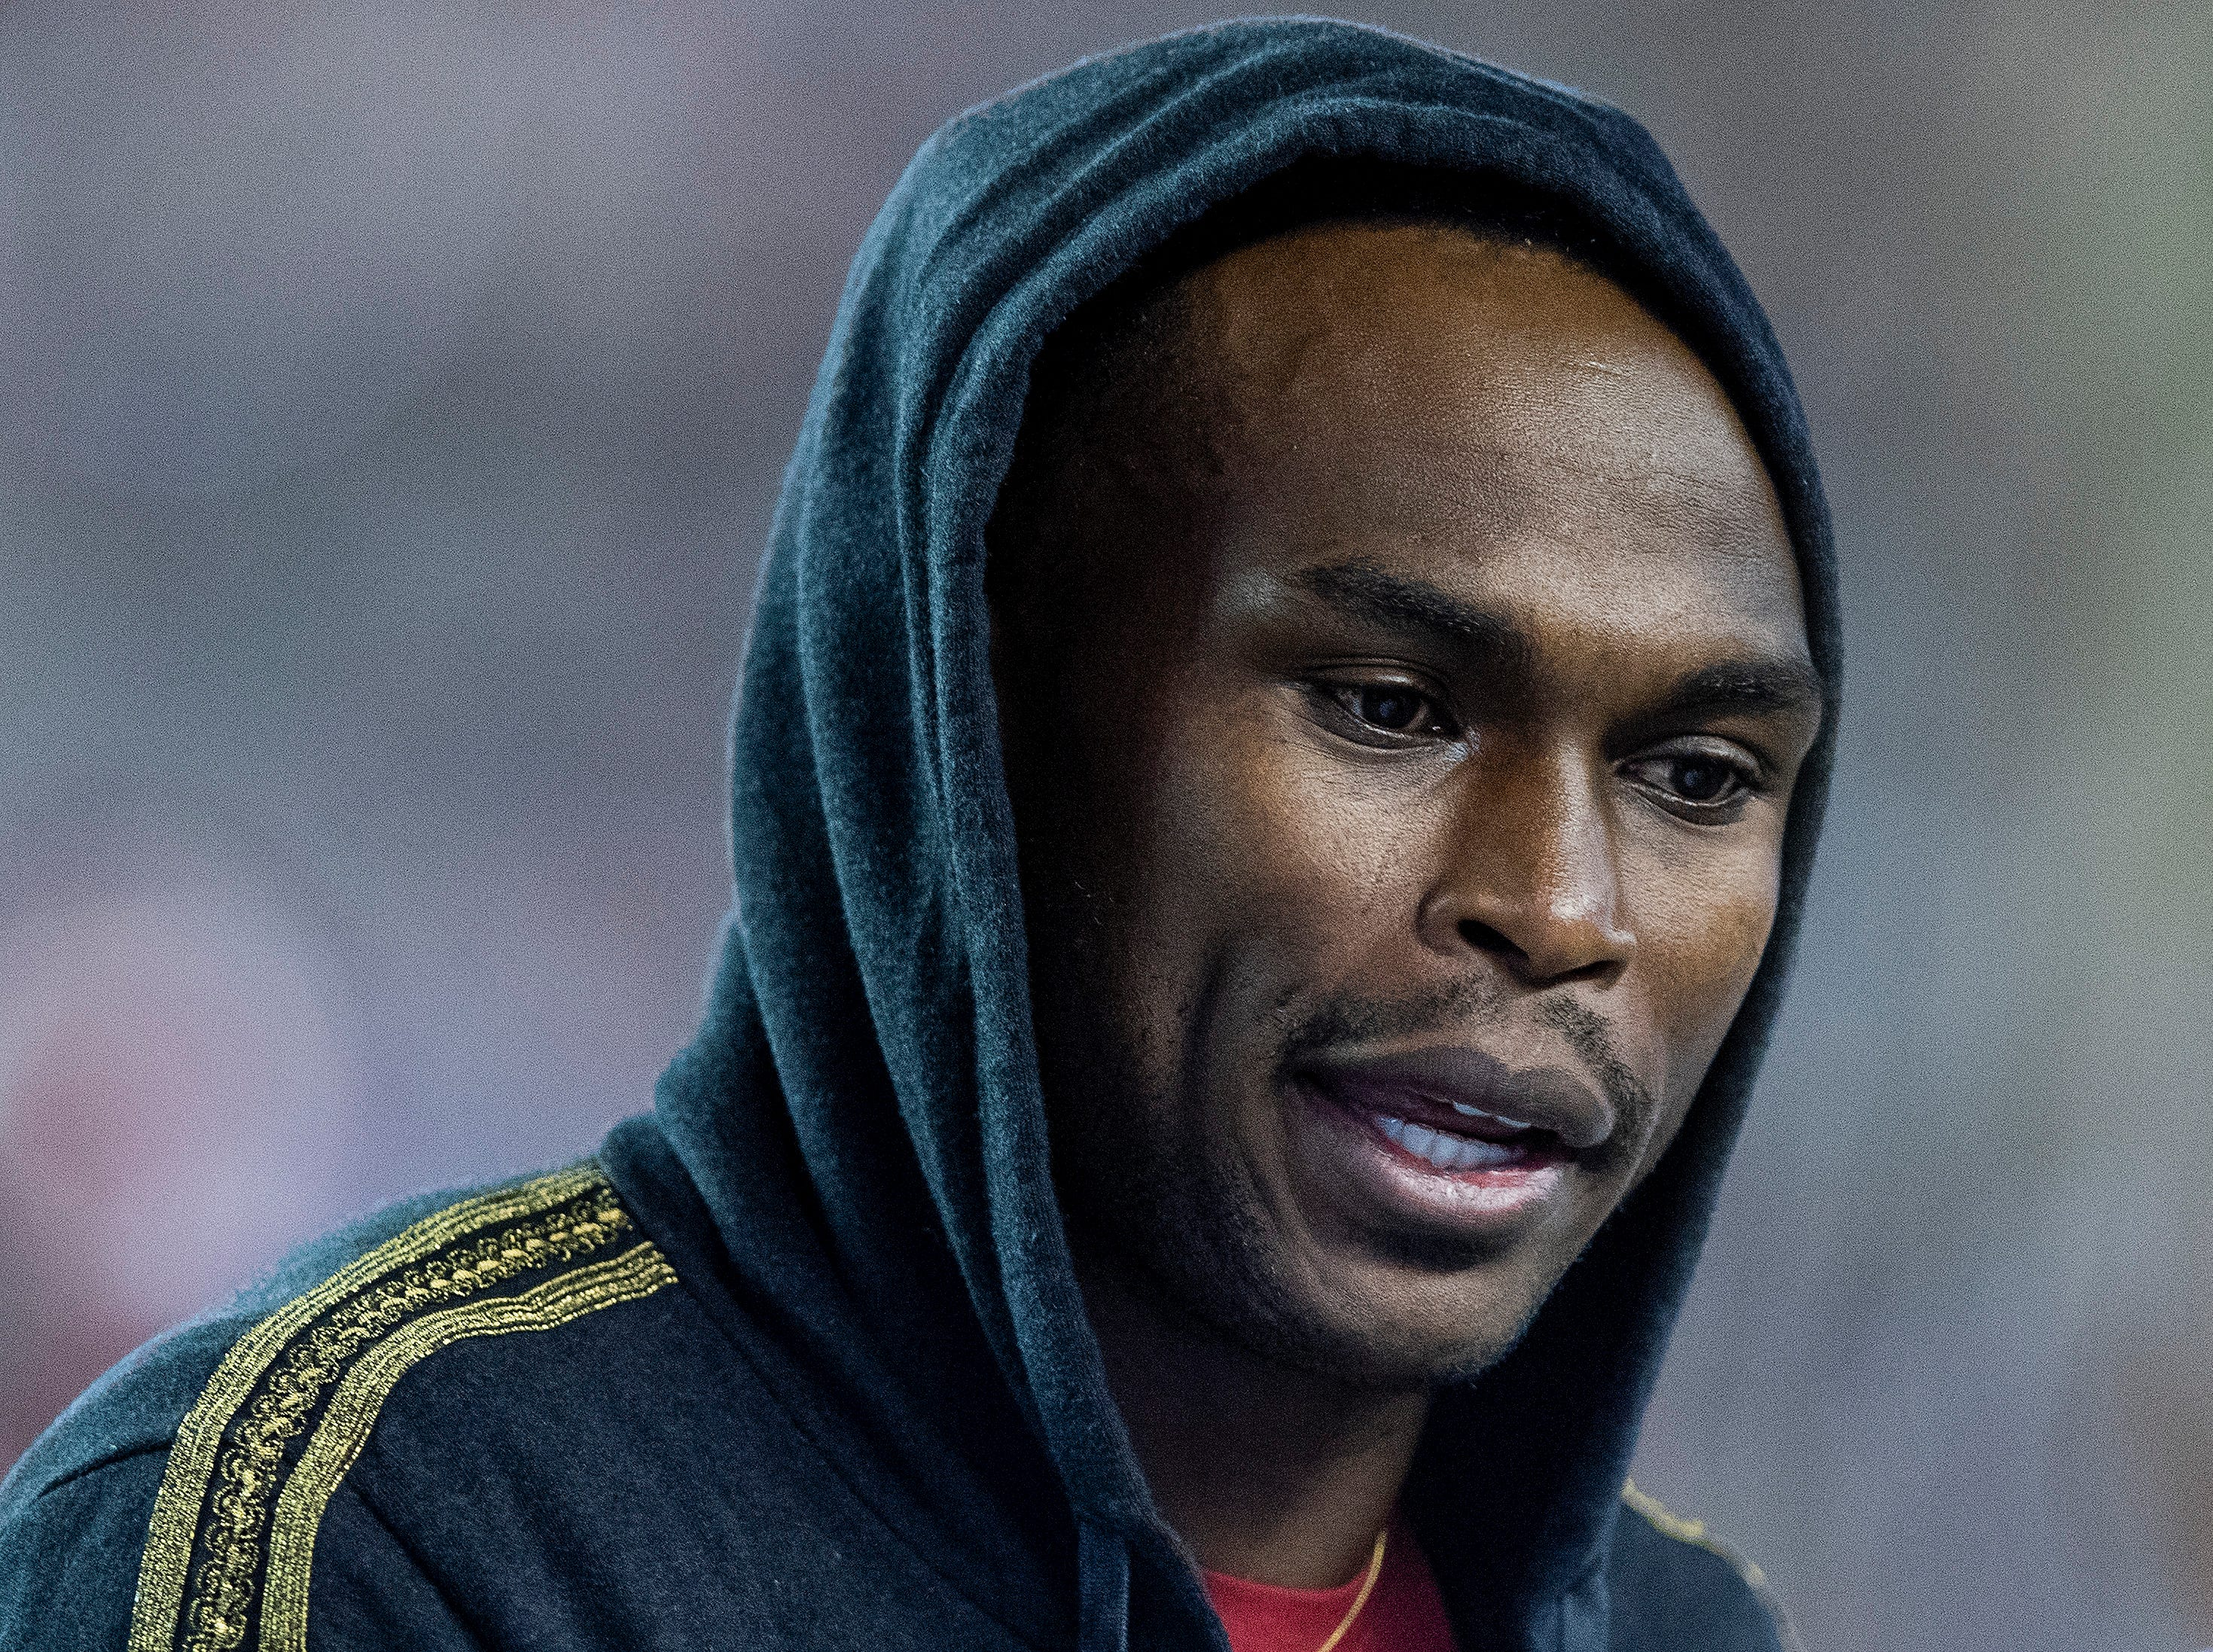 Former Alabama receiver and current NFL player Julio Jones watches the Iron Bowl at Bryant-Denny Stadium in Tuscaloosa, Ala., on Saturday November 24, 2018.